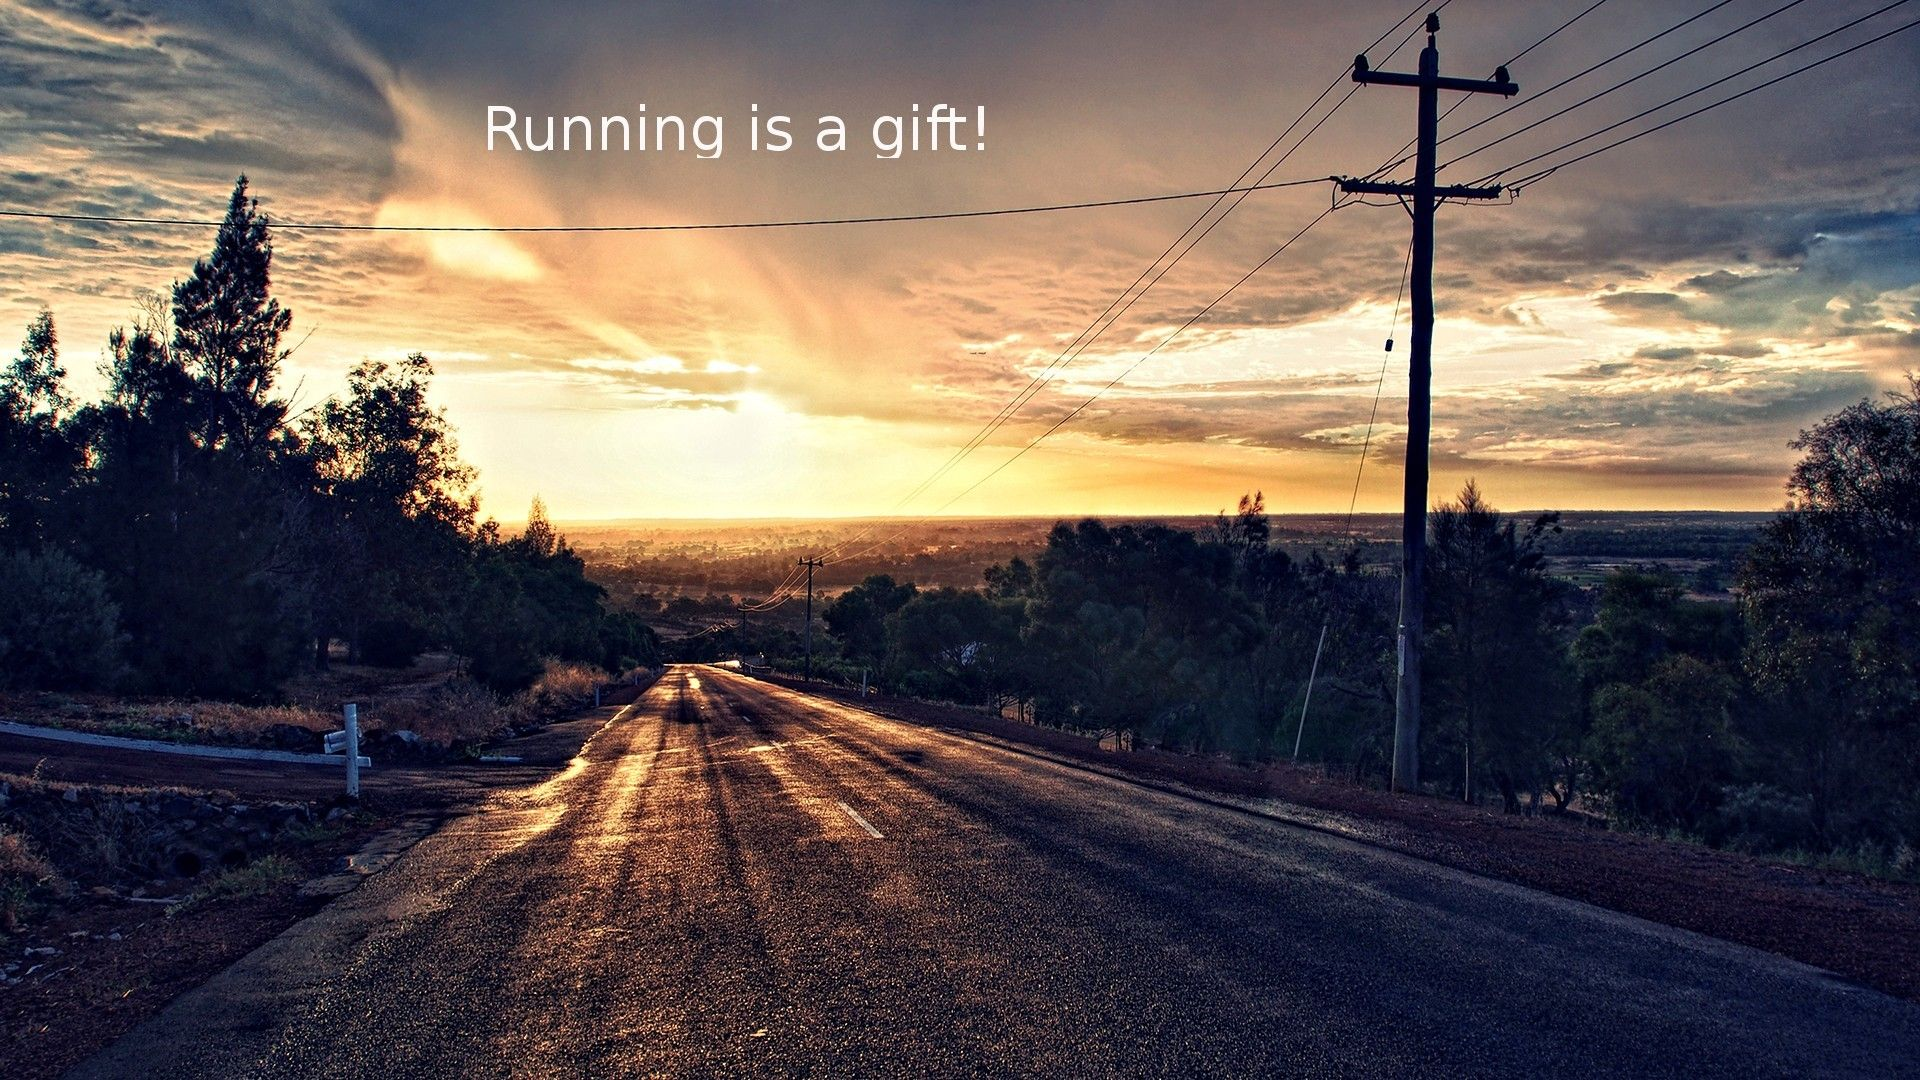 Running Is A Gift Sunset Wallpaper Sunset Road Wallpaper Pc